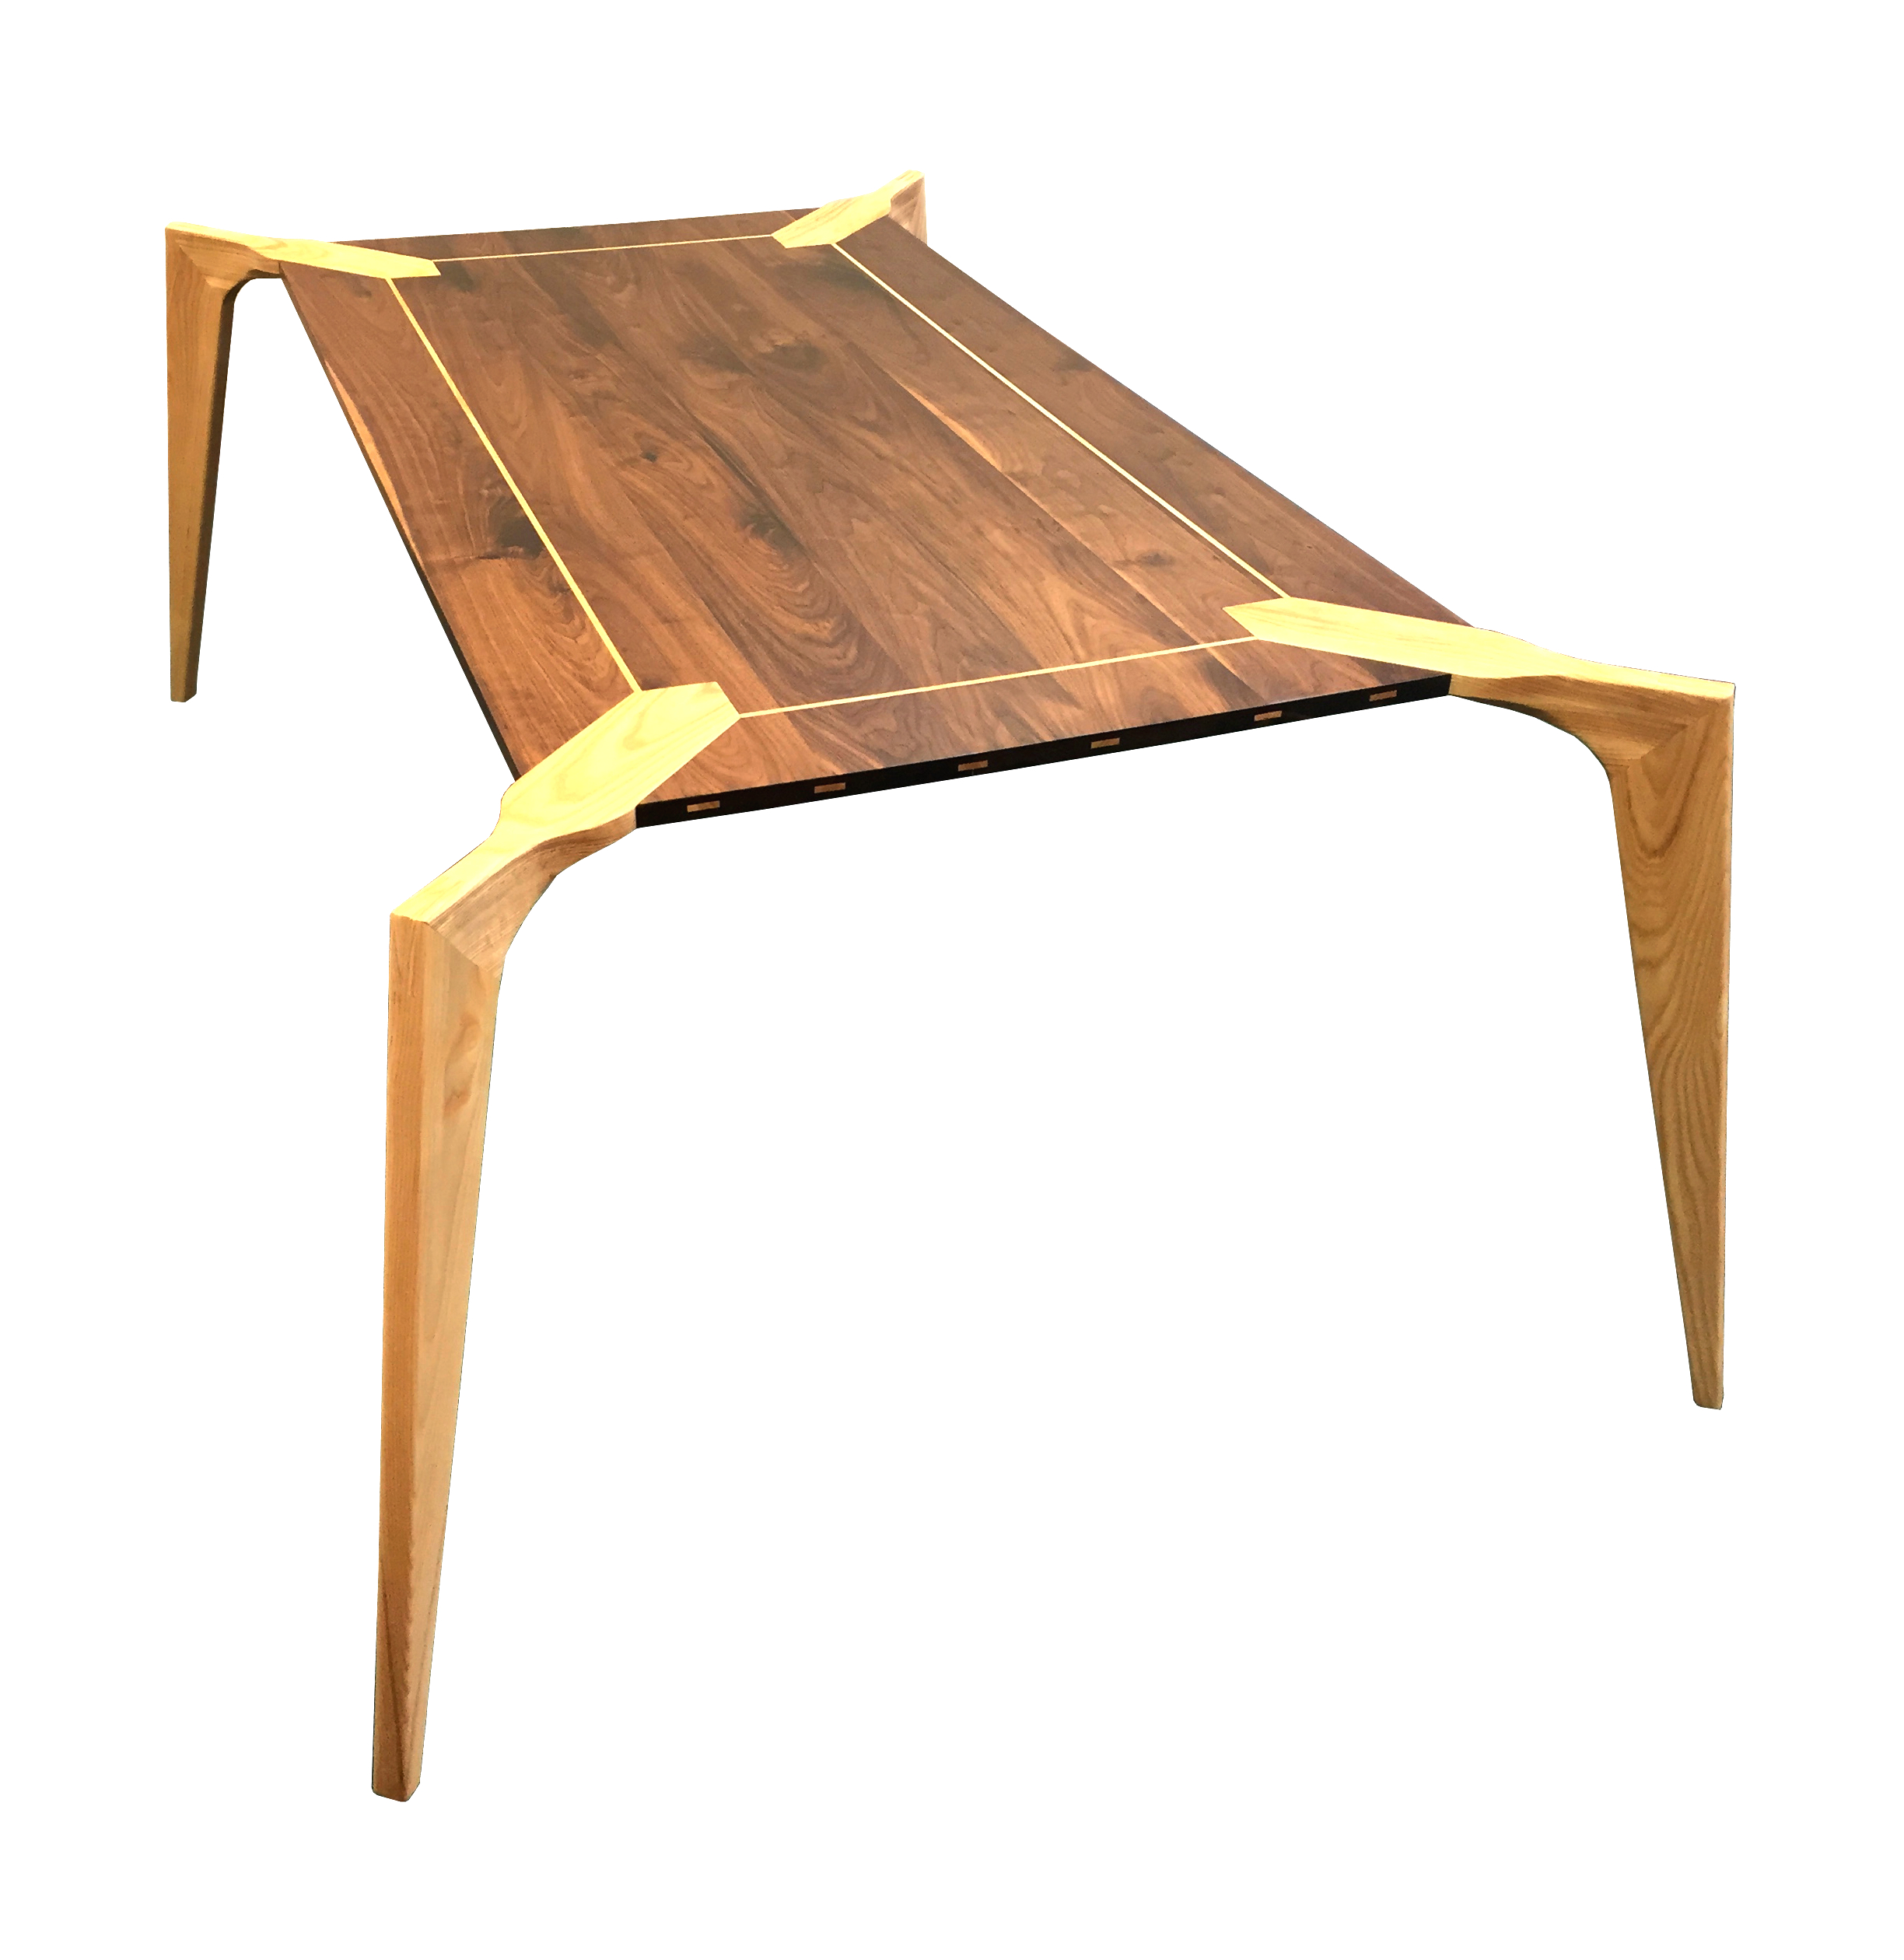 Joint Effort Studio Kipp Table Side Axon_F.jpg